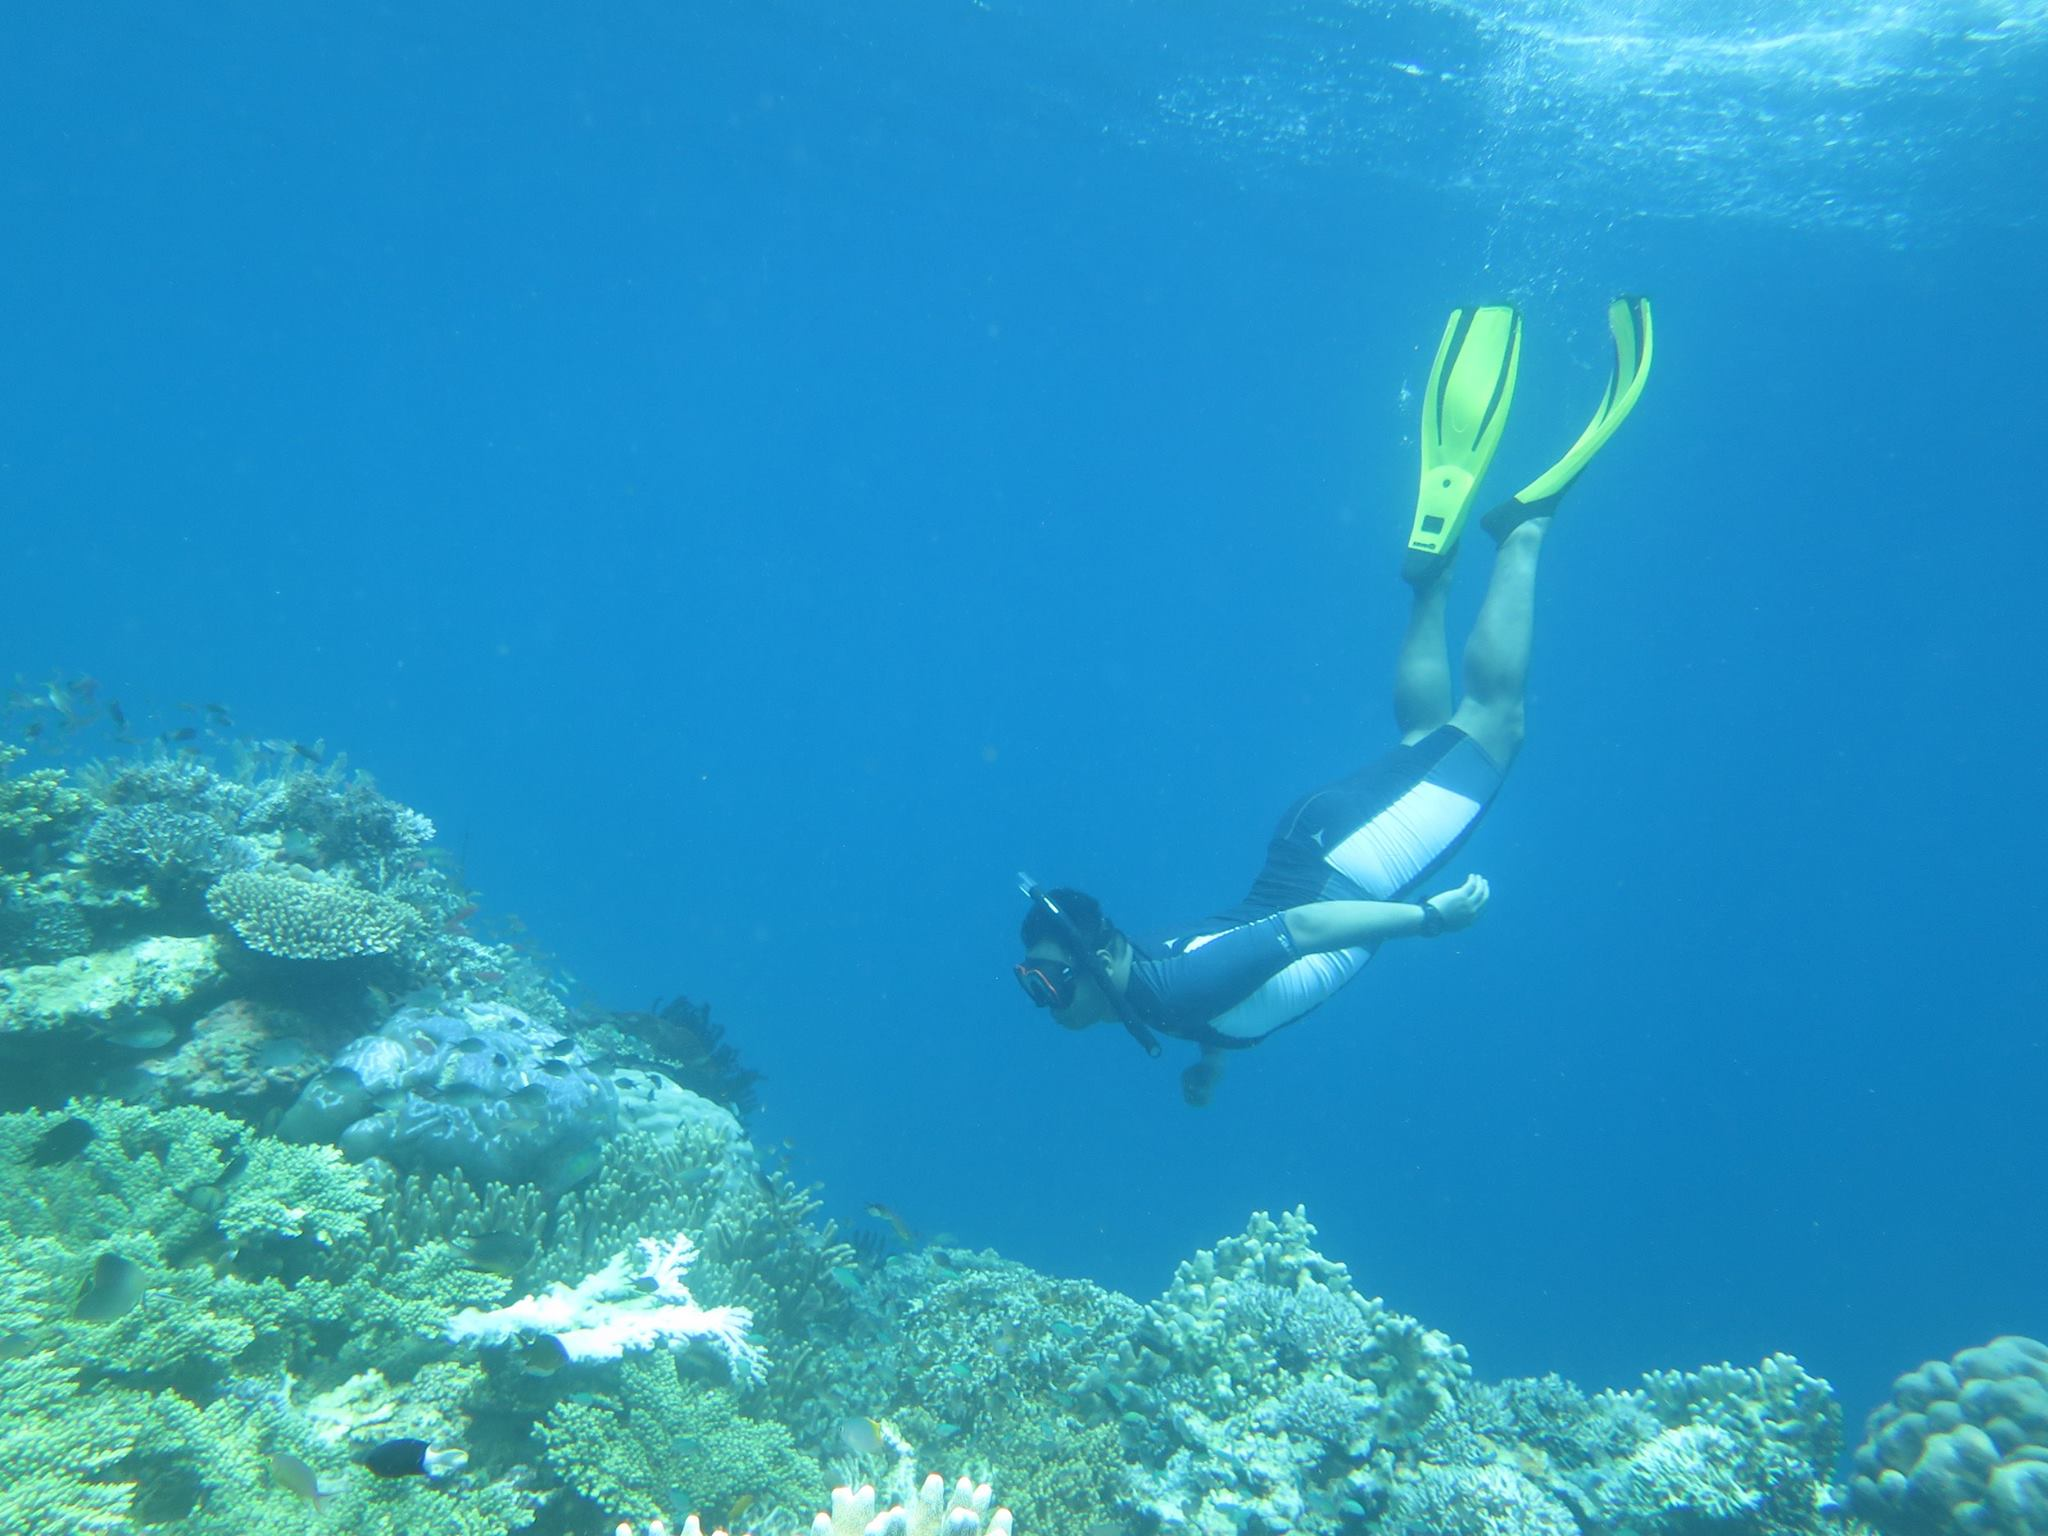 labengki-best-place-in-the-world-to-scuba-dive-with-easy-snorkling-gear